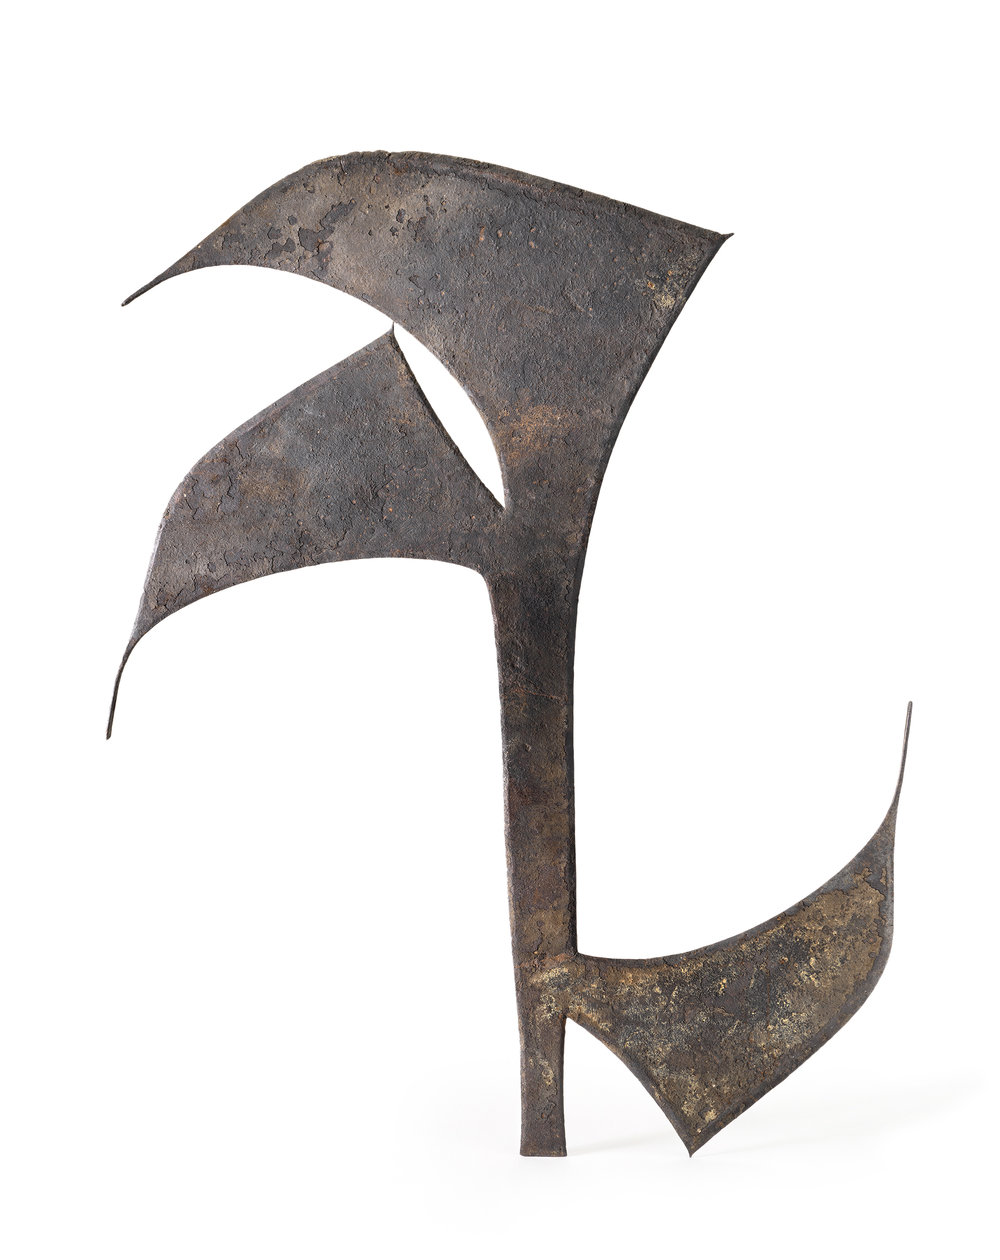 Artist unknown (Nkutshu, Ndengese peoples, Democratic Republic of the Congo), throwing knife–shaped currency (oshele), 19th century, iron, H: 80.65 cm. Private collection. Image © Fowler Museum at UCLA. Photograph Don Cole, 2018